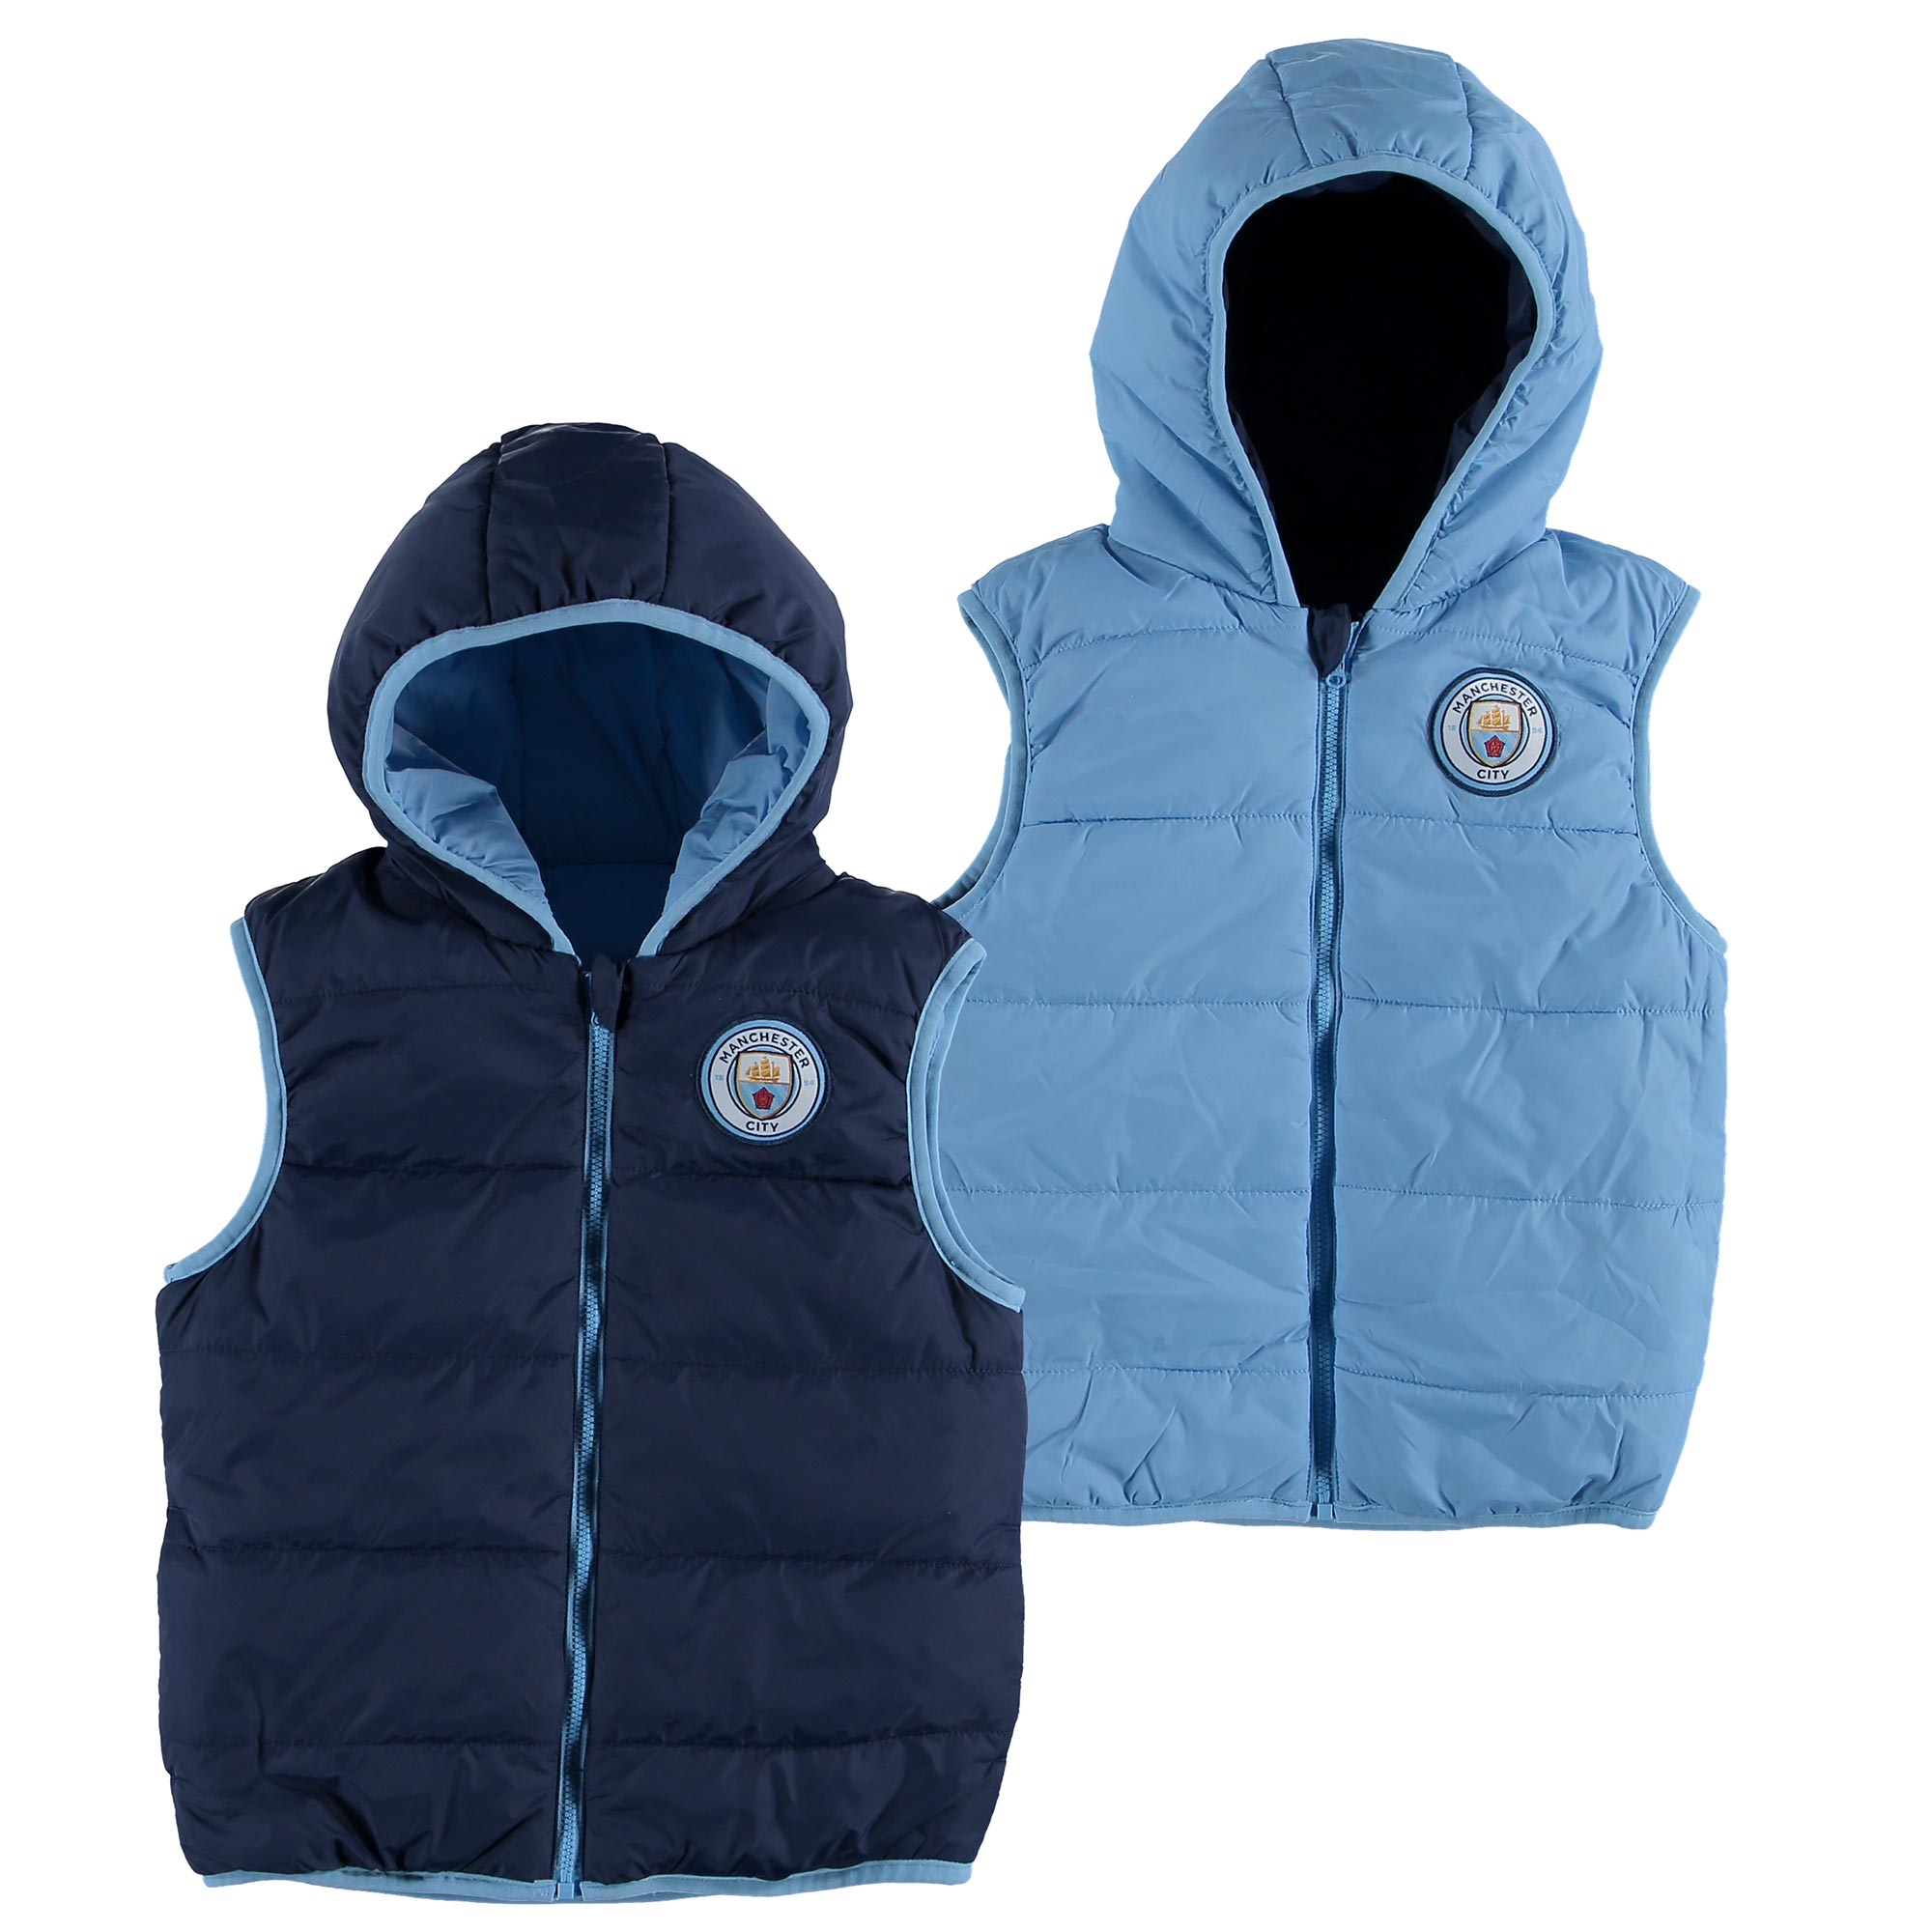 Manchester City Reversible Gilet - Navy/Sky - Junior